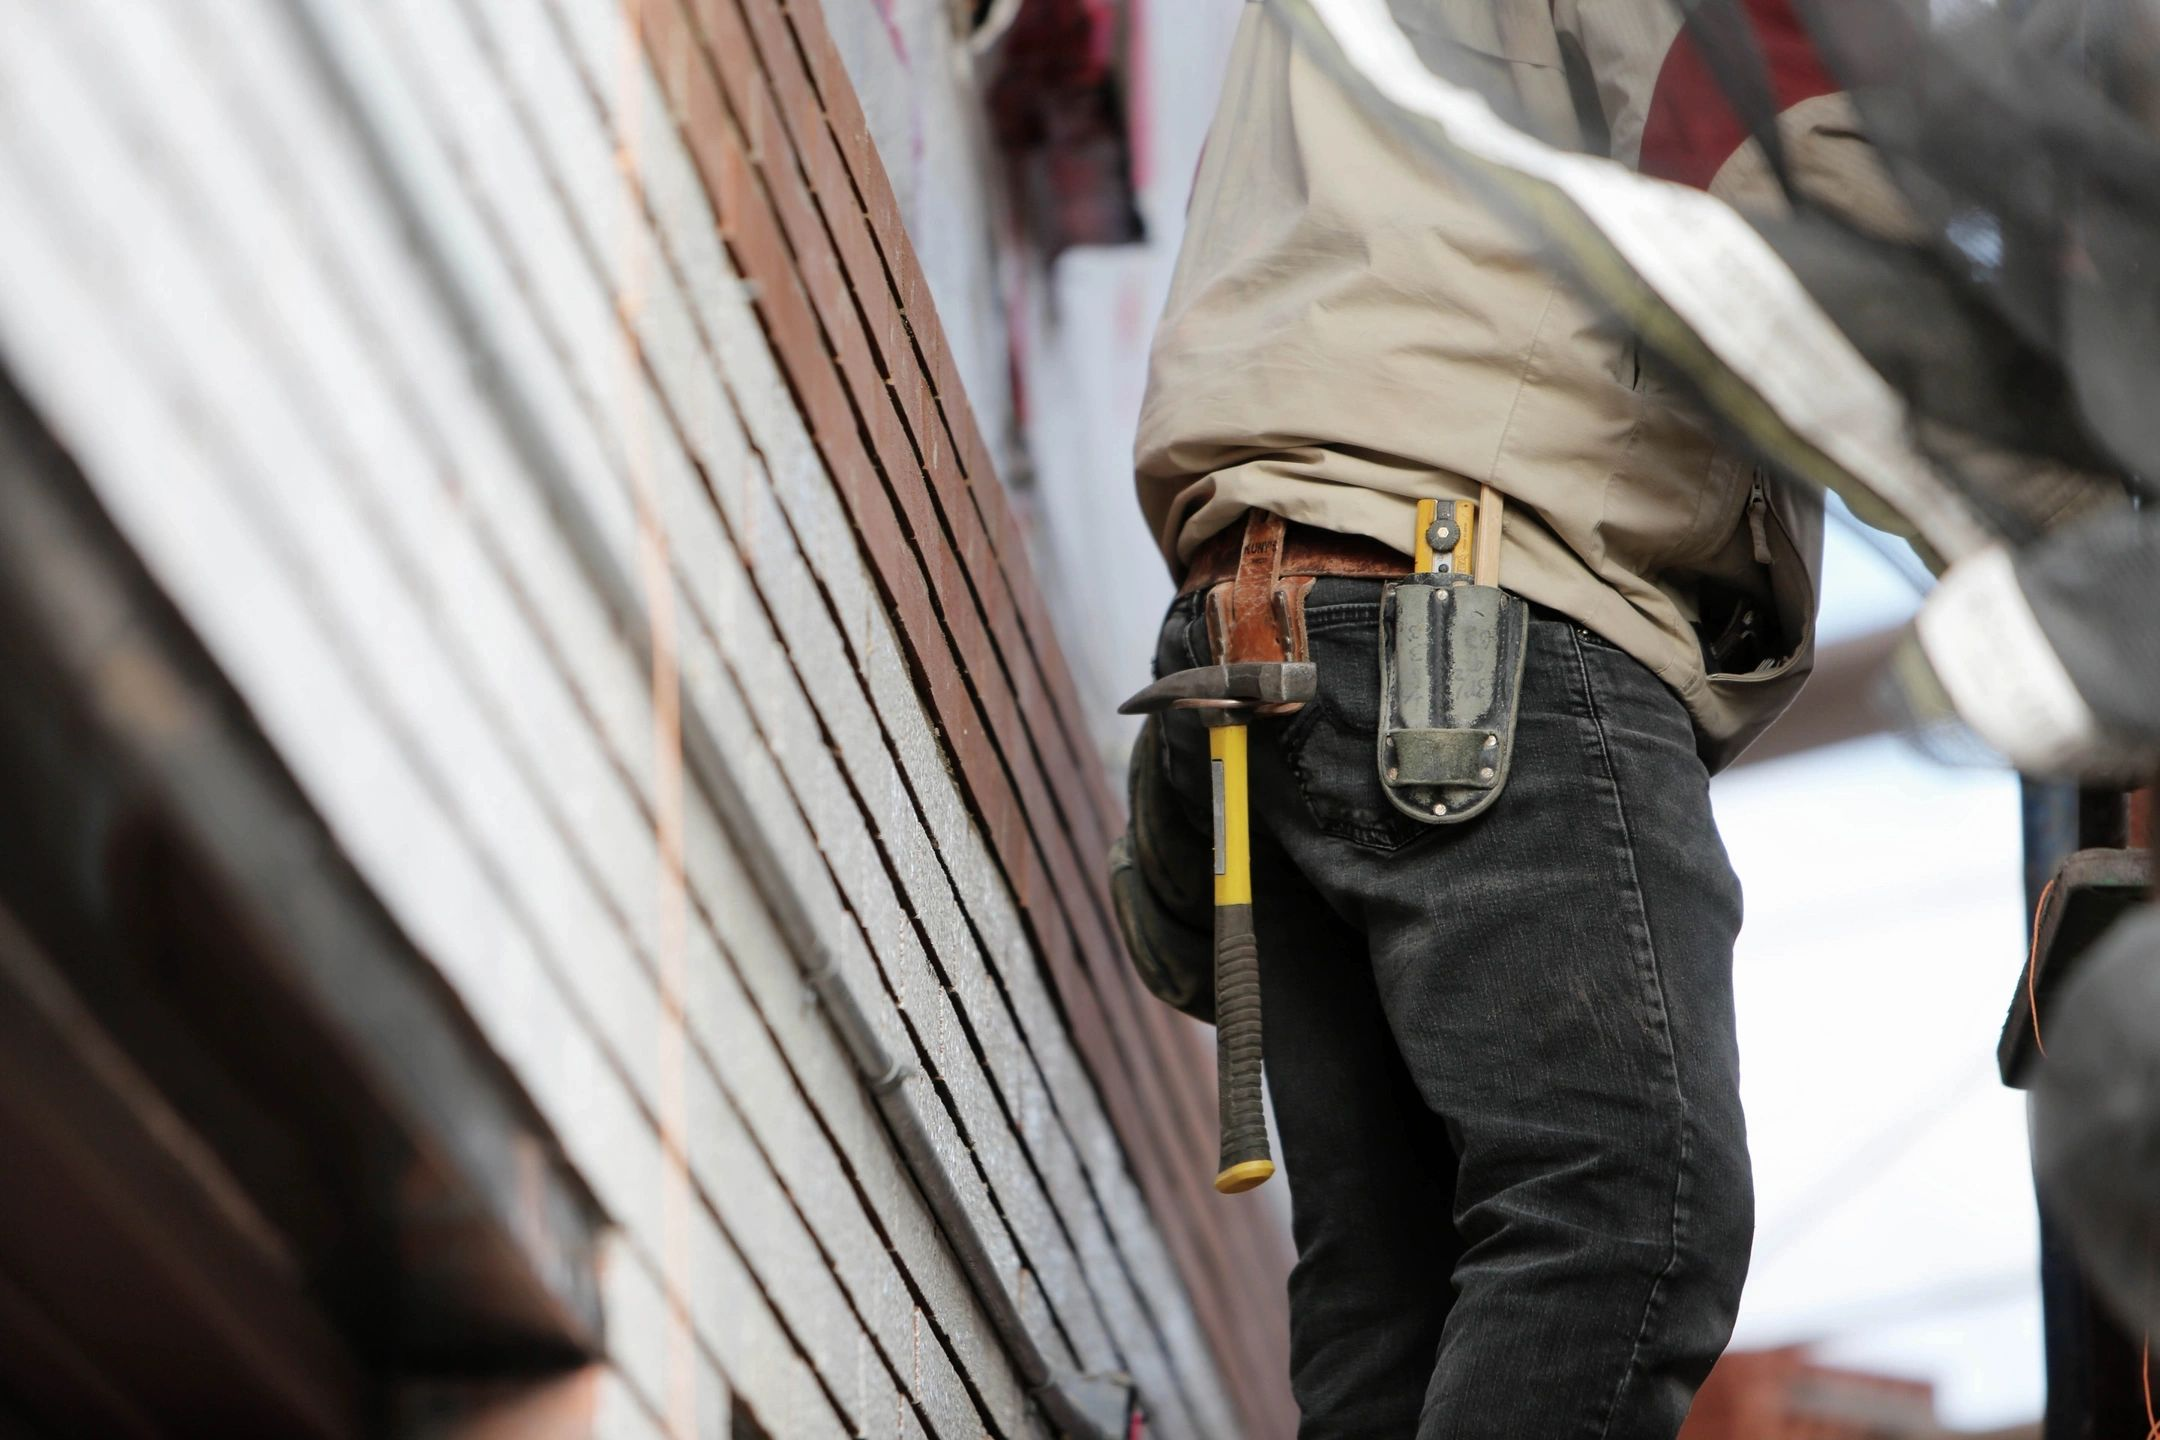 Global Clean provides construction cleaning in both small and large construction sites. Servicing both the Toronto and Greater Toronto area.